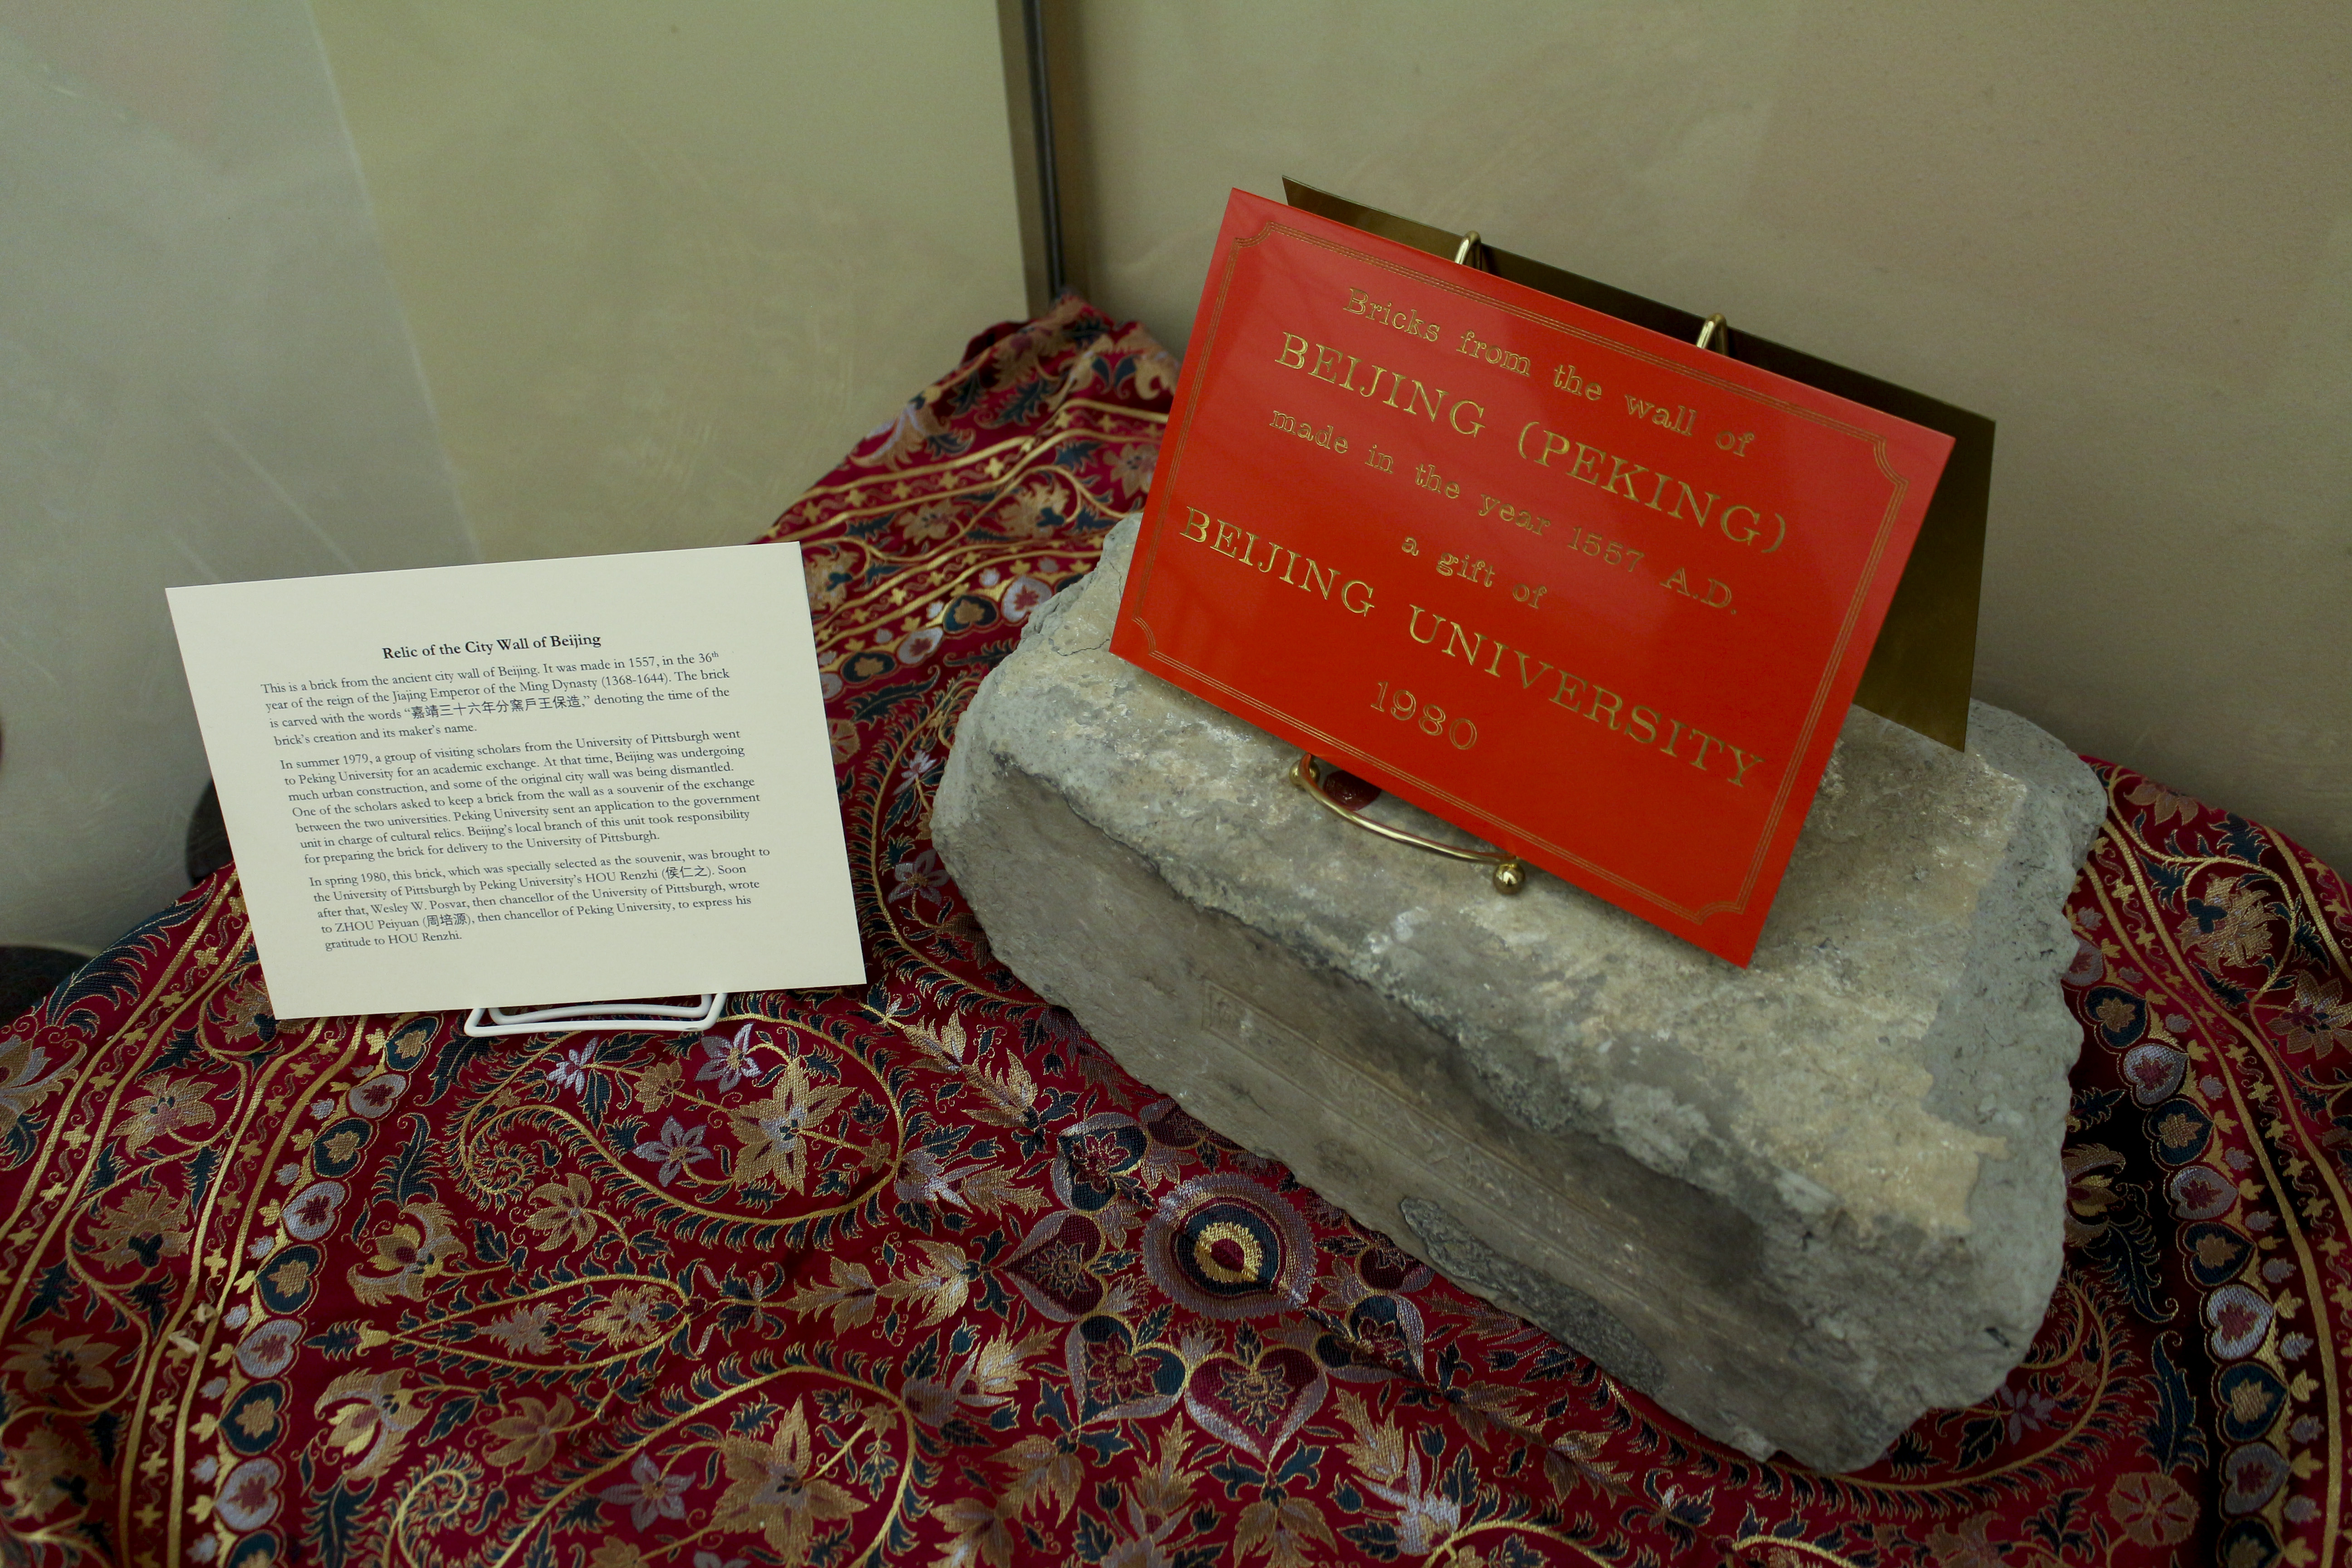 an ancient brick given by Peking University